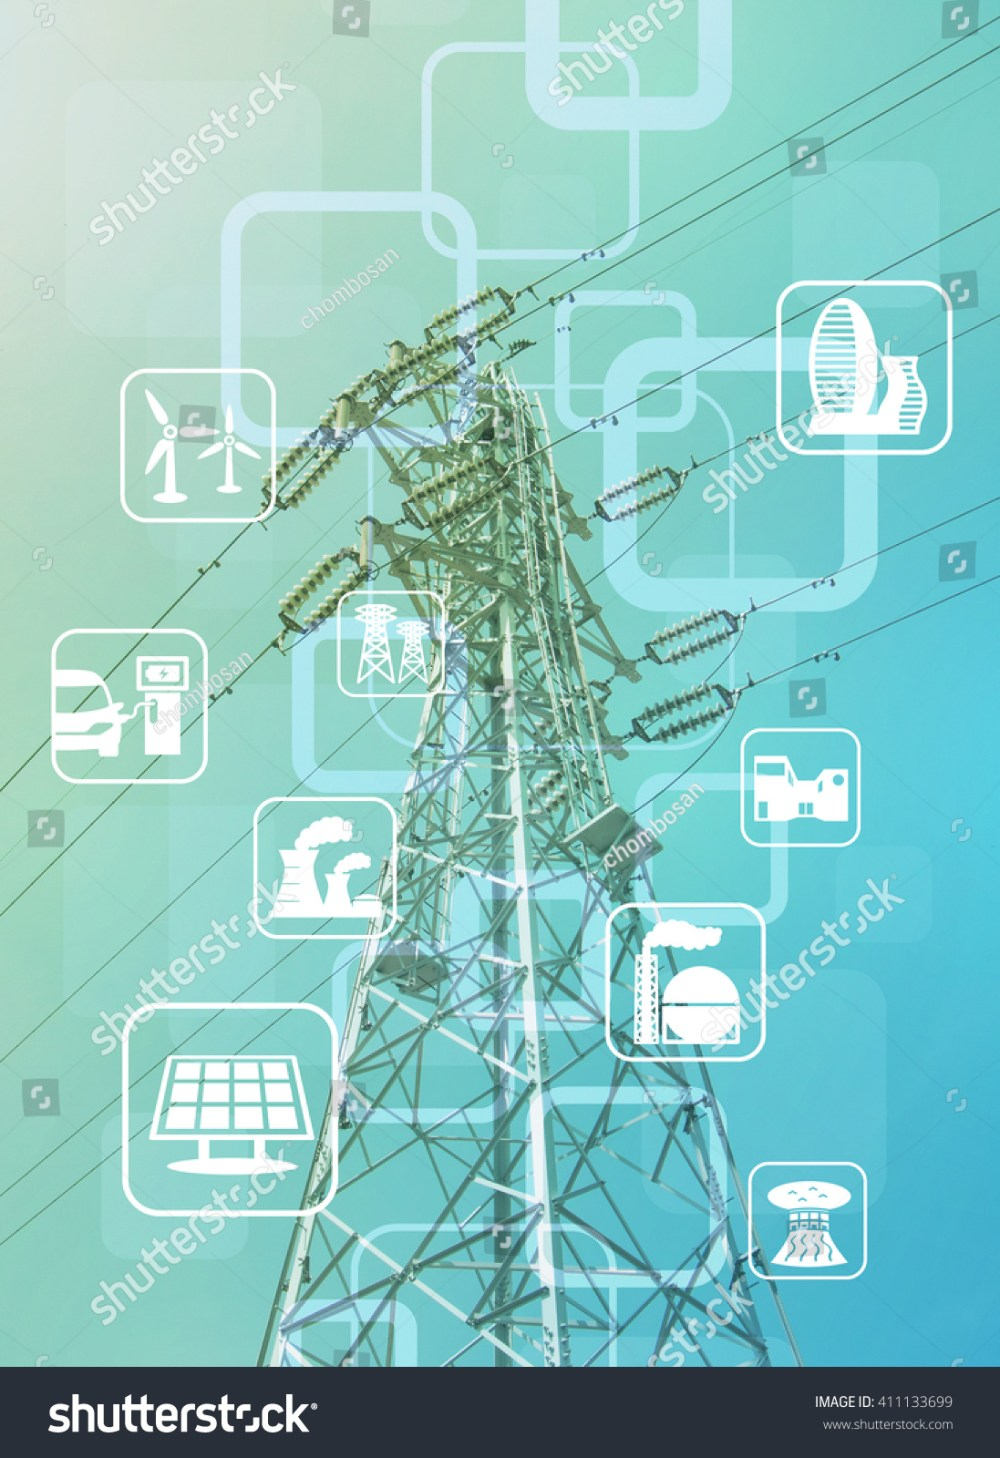 medium resolution of power transmission tower and smart energy smart grid renewable energy icons abstract image